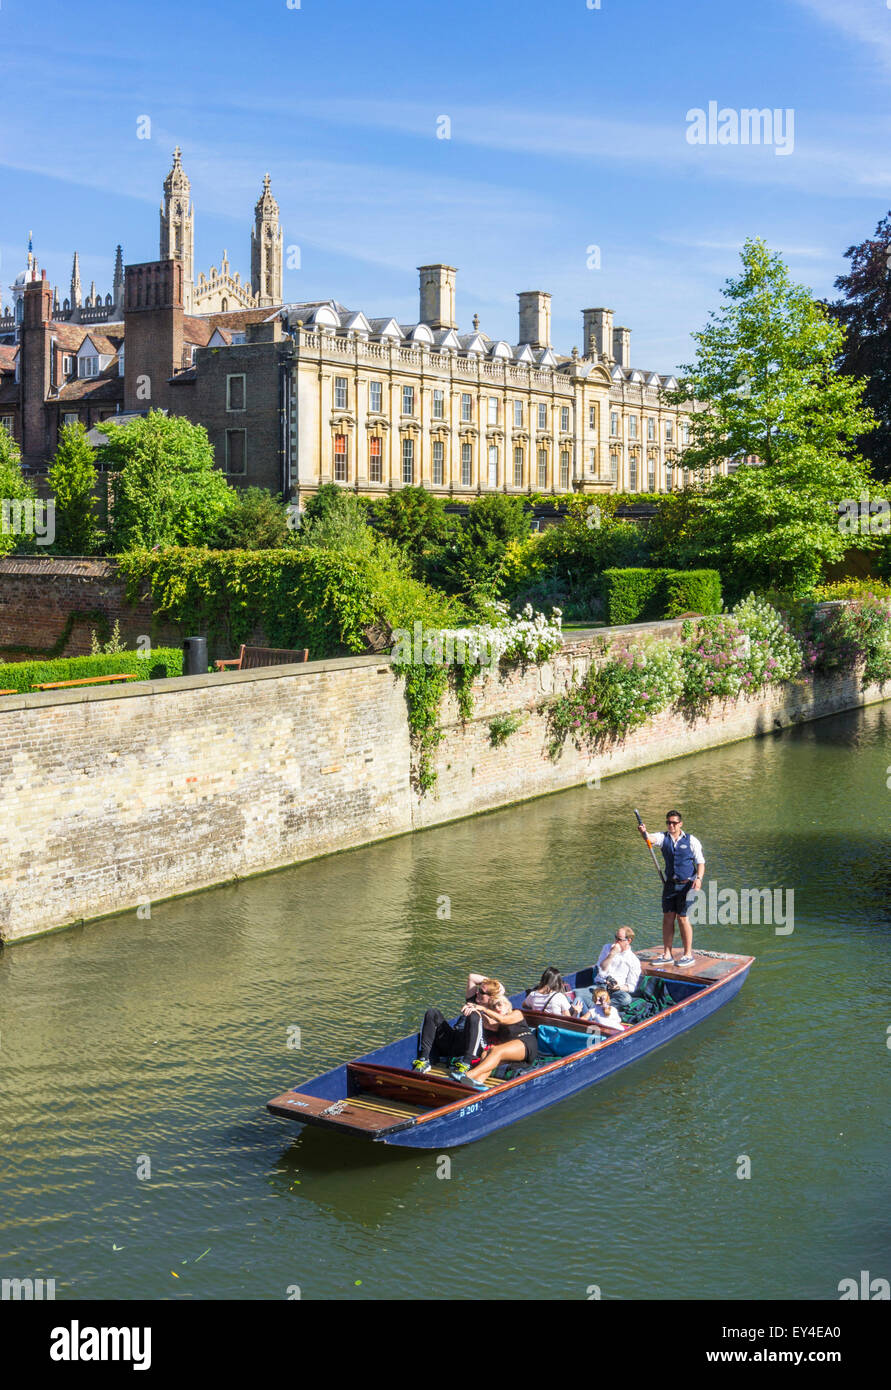 Punting, Clare college and the River Cam Cambridge Cambridgeshire England UK GB EU Europe - Stock Image